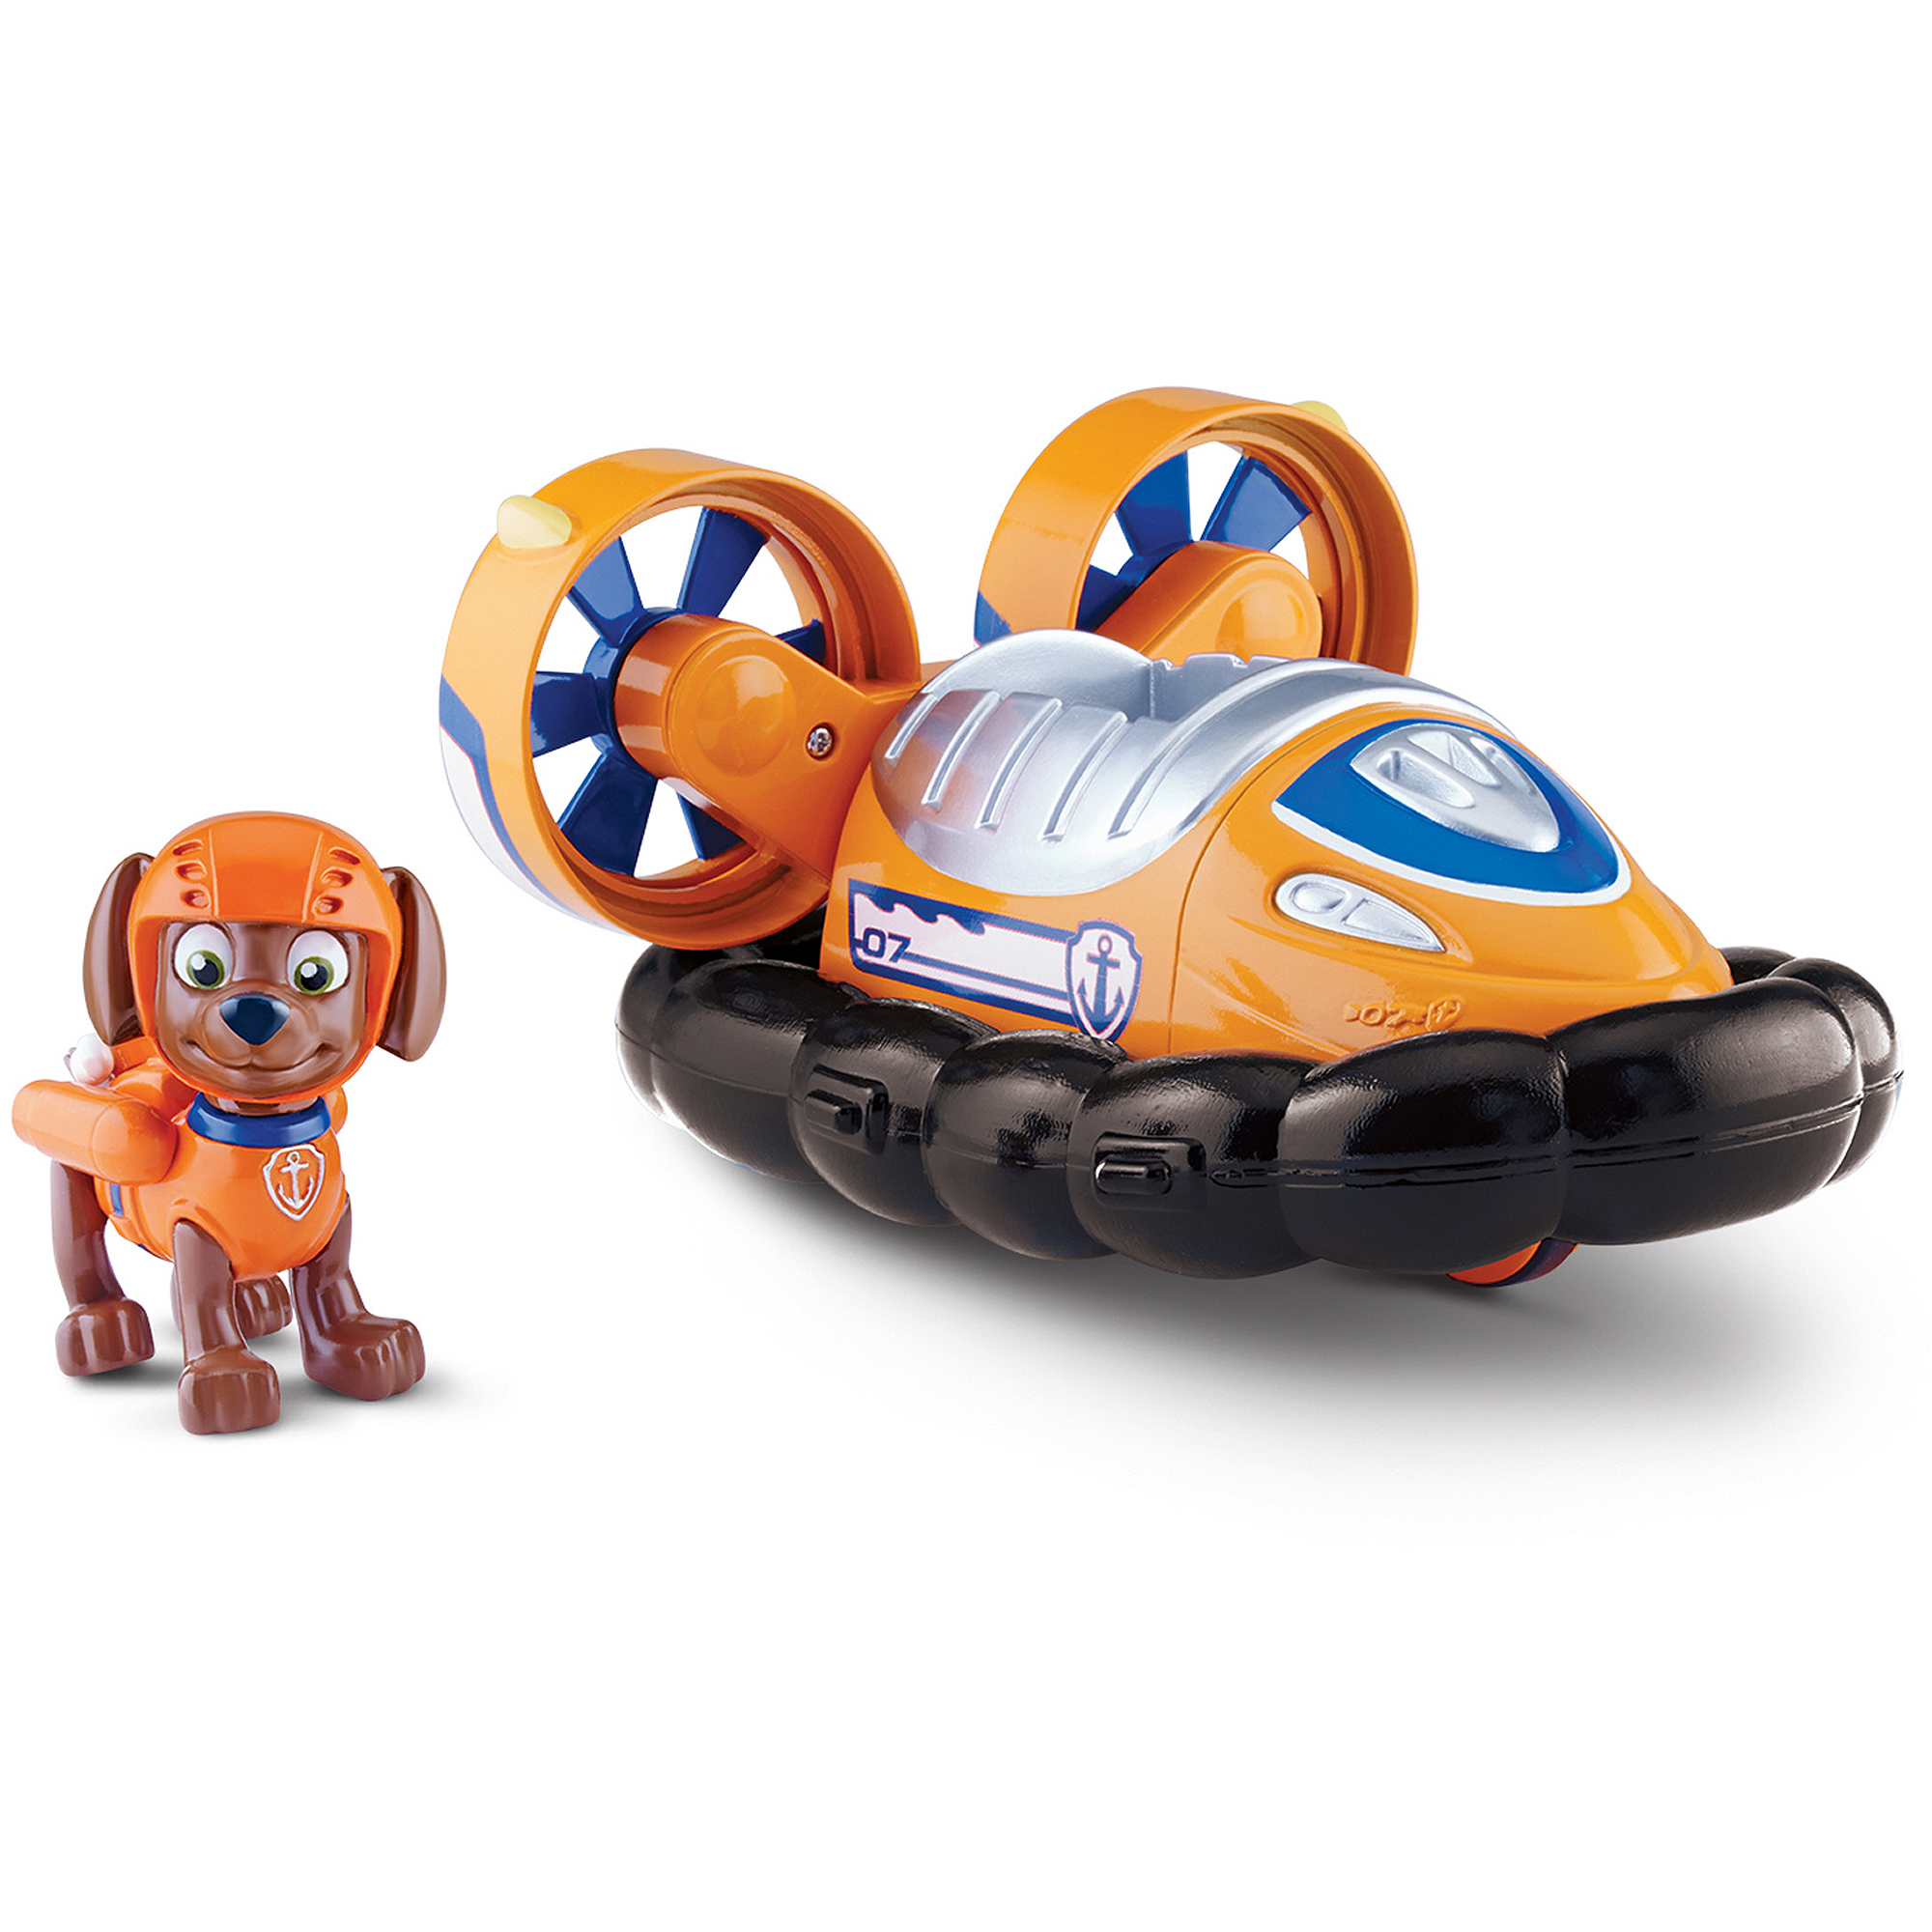 Nickelodeon Paw Patrol - Zuma's Hovercraft, Vechicle and Figure